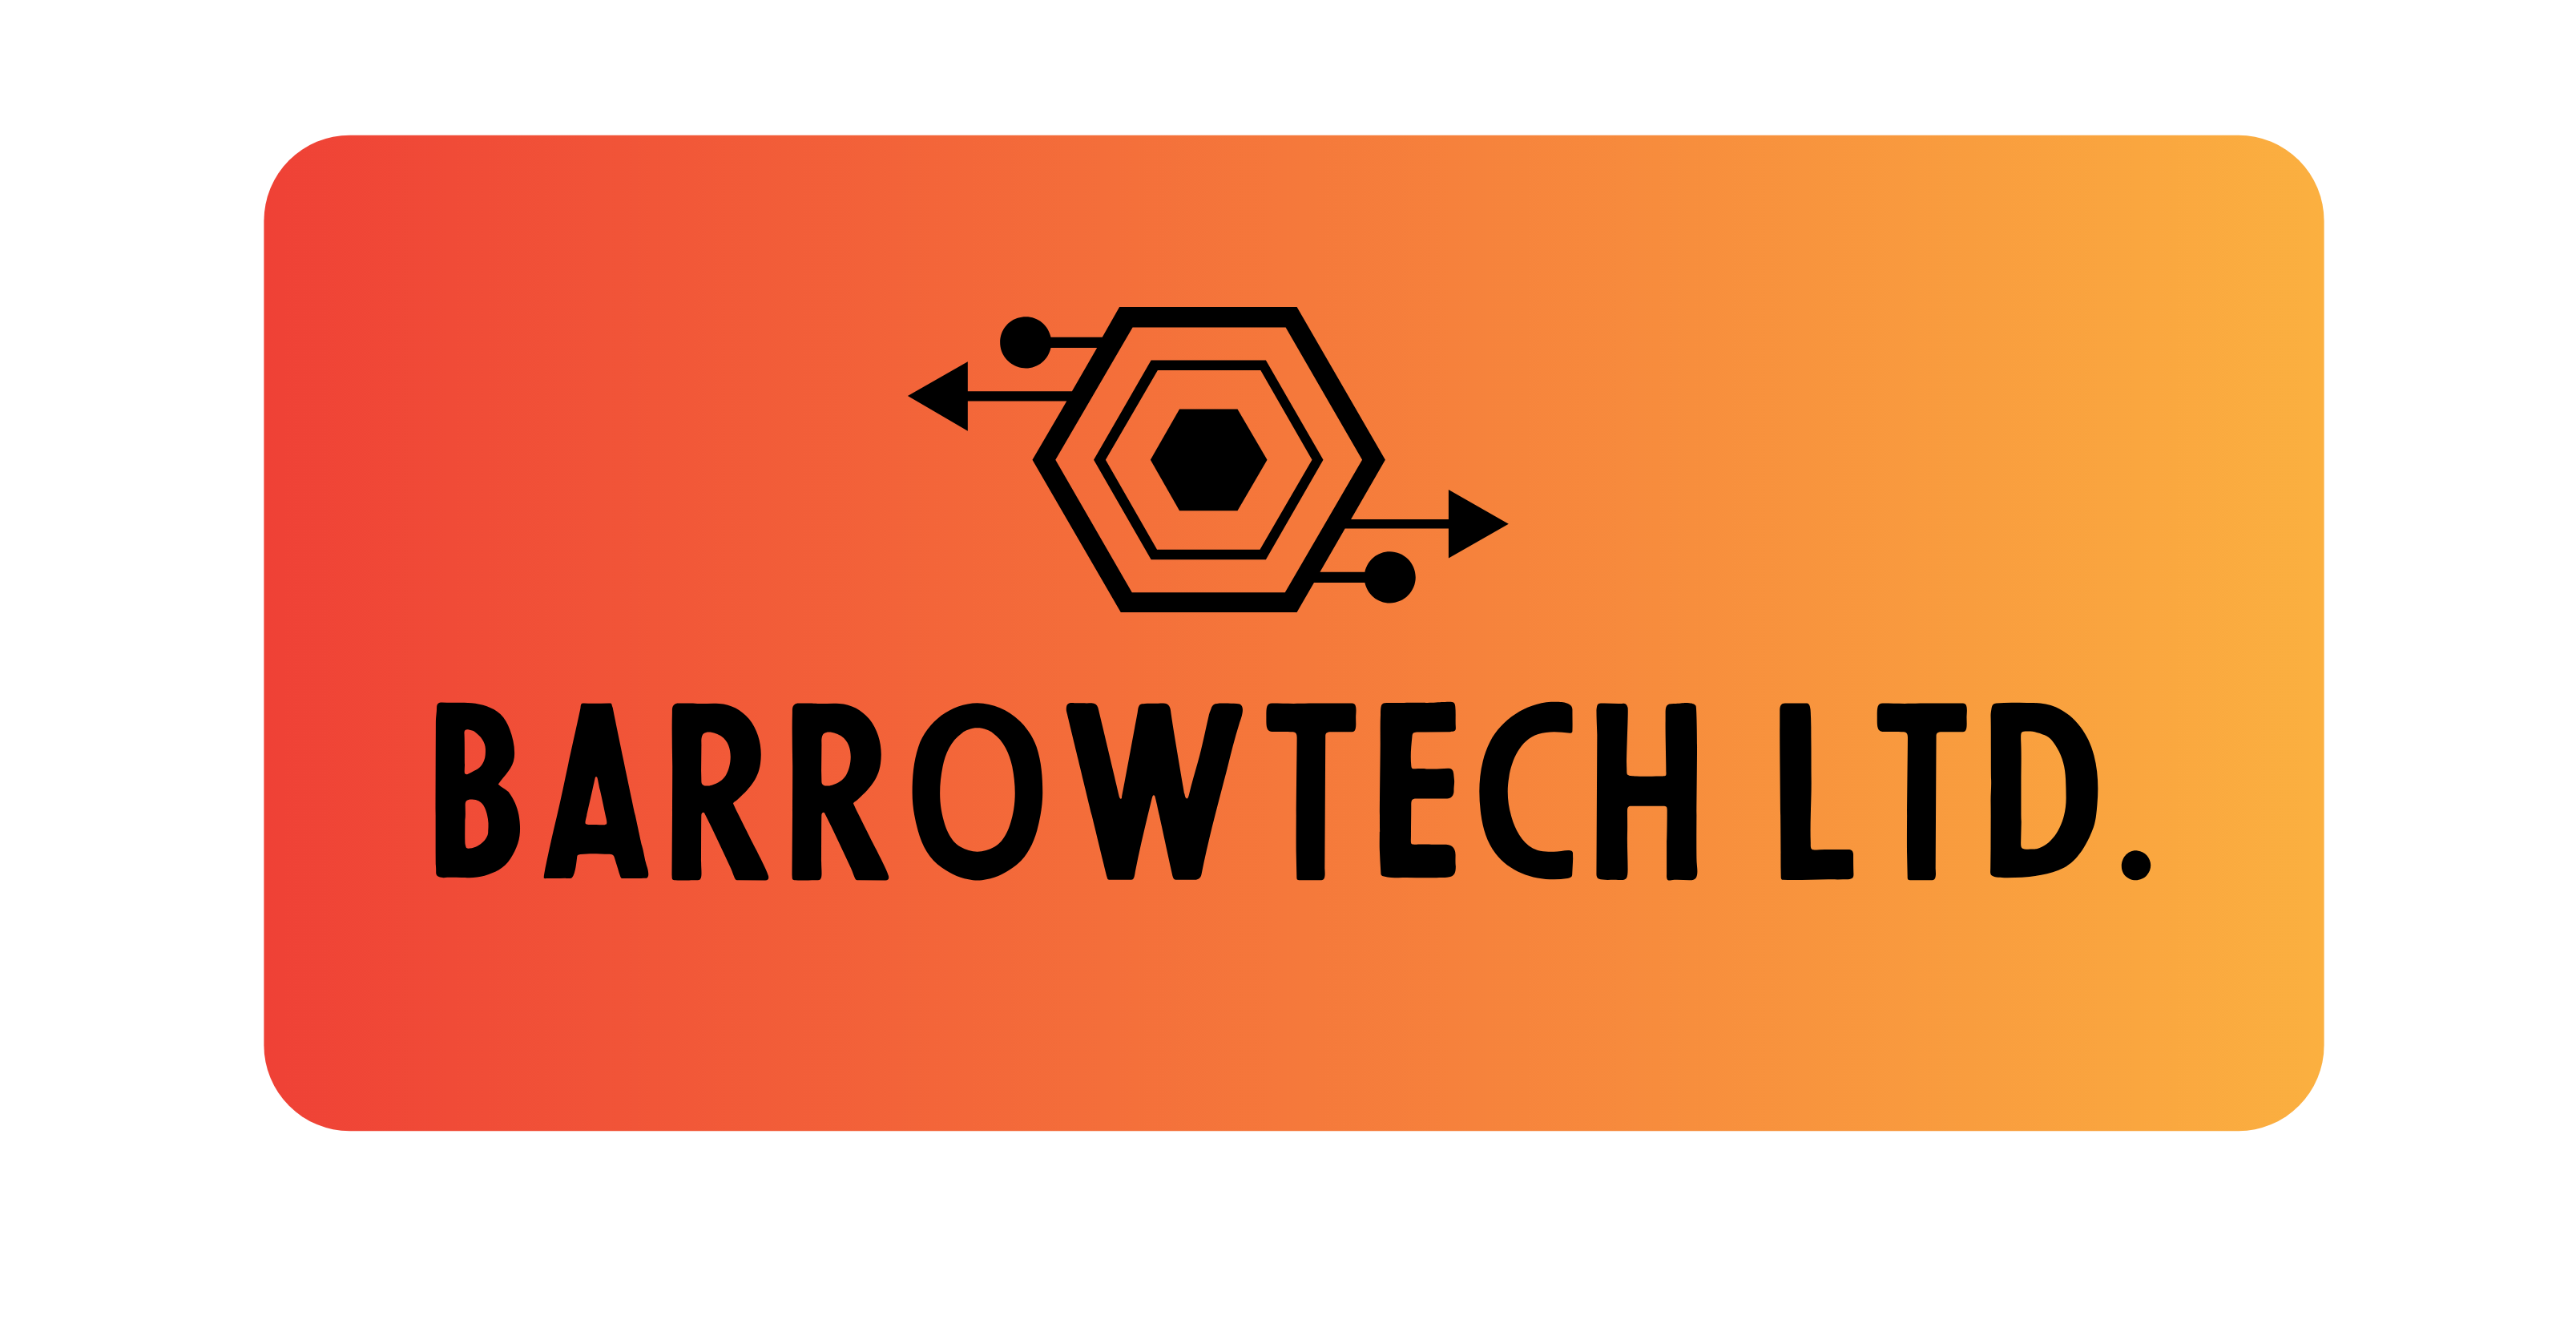 BarrowTech Ltd.